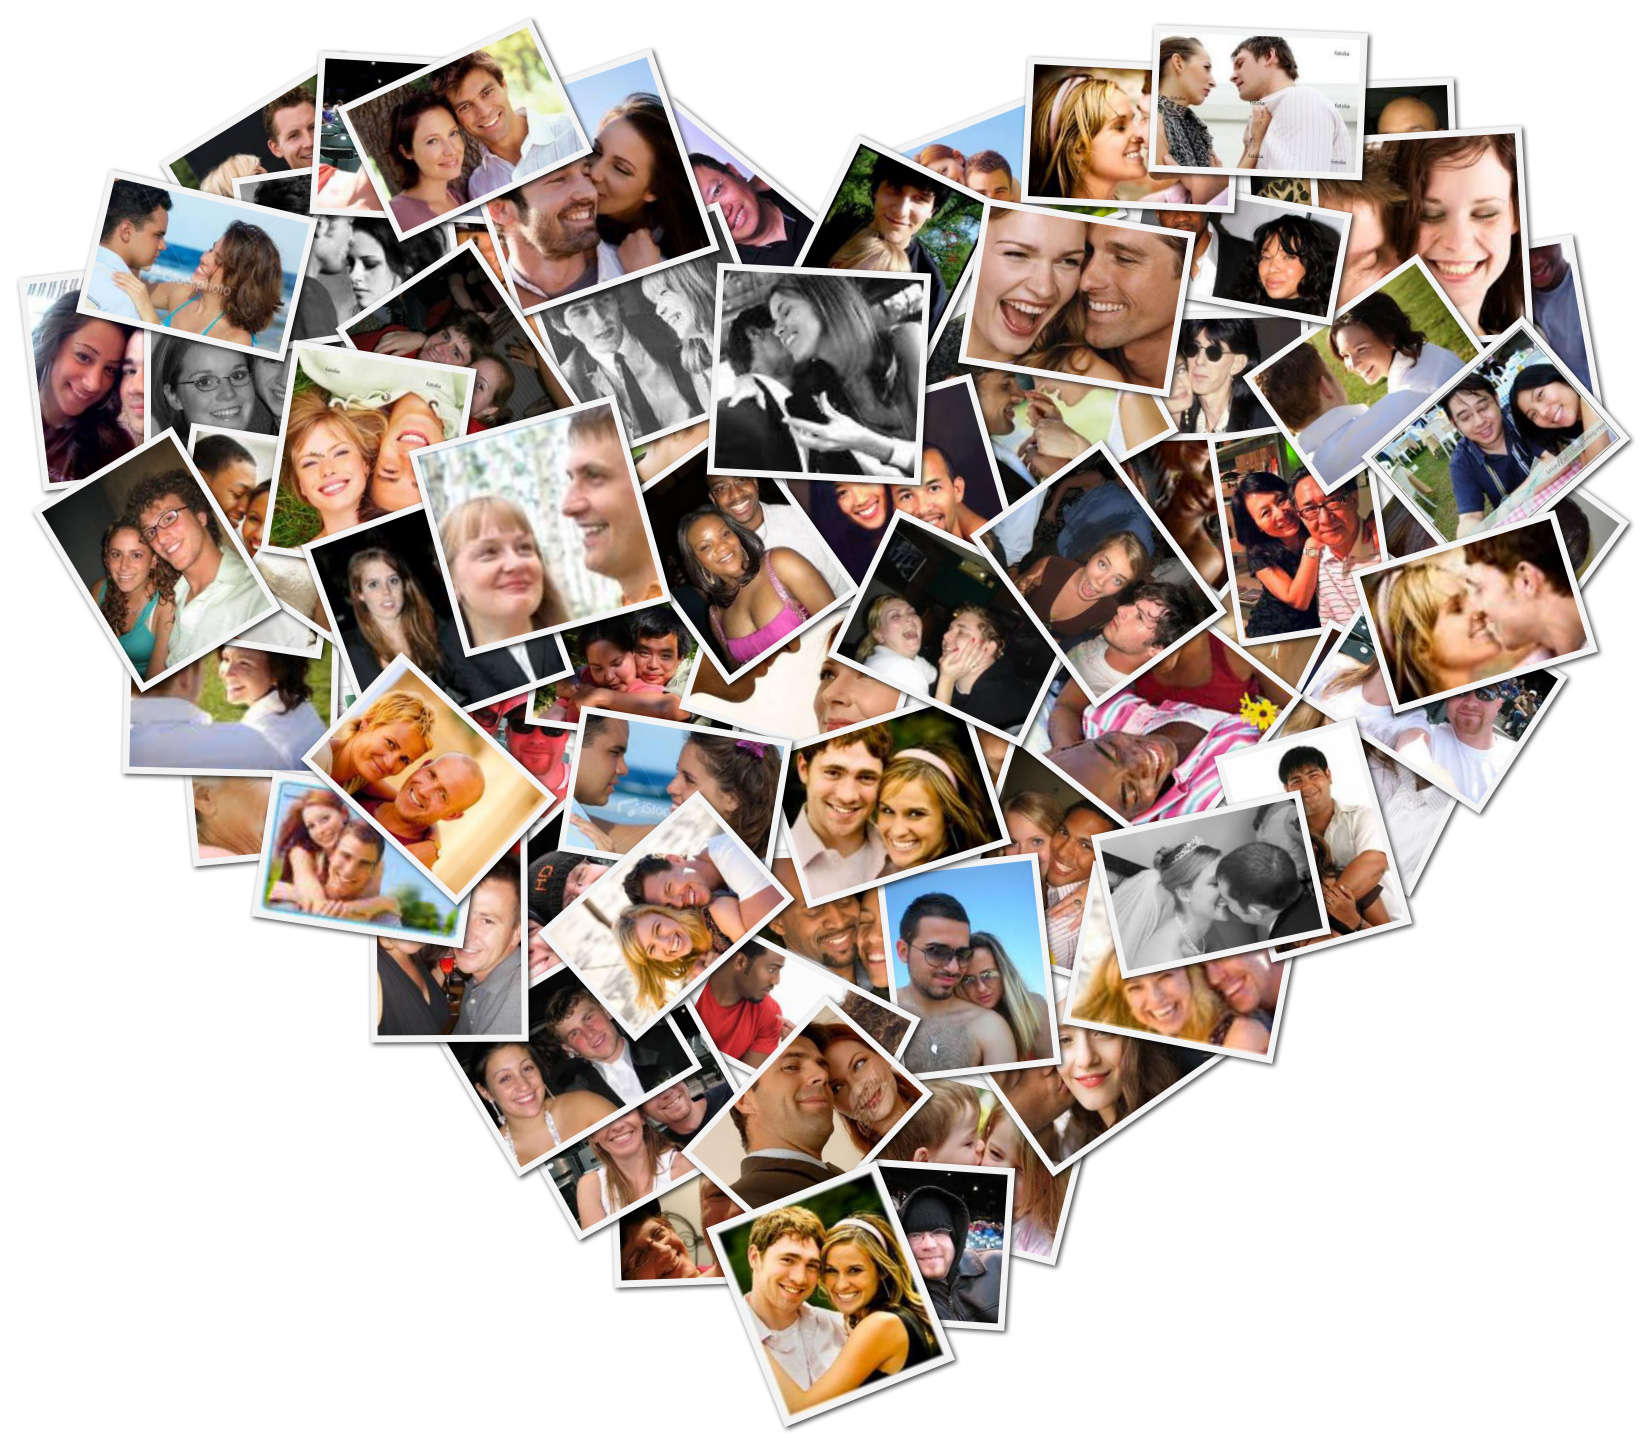 Original, Thoughtful, Touching Valentine's Day Idea | Shape Collage ...: www.shapecollage.com/blog/original-thoughtful-touching-valentine...